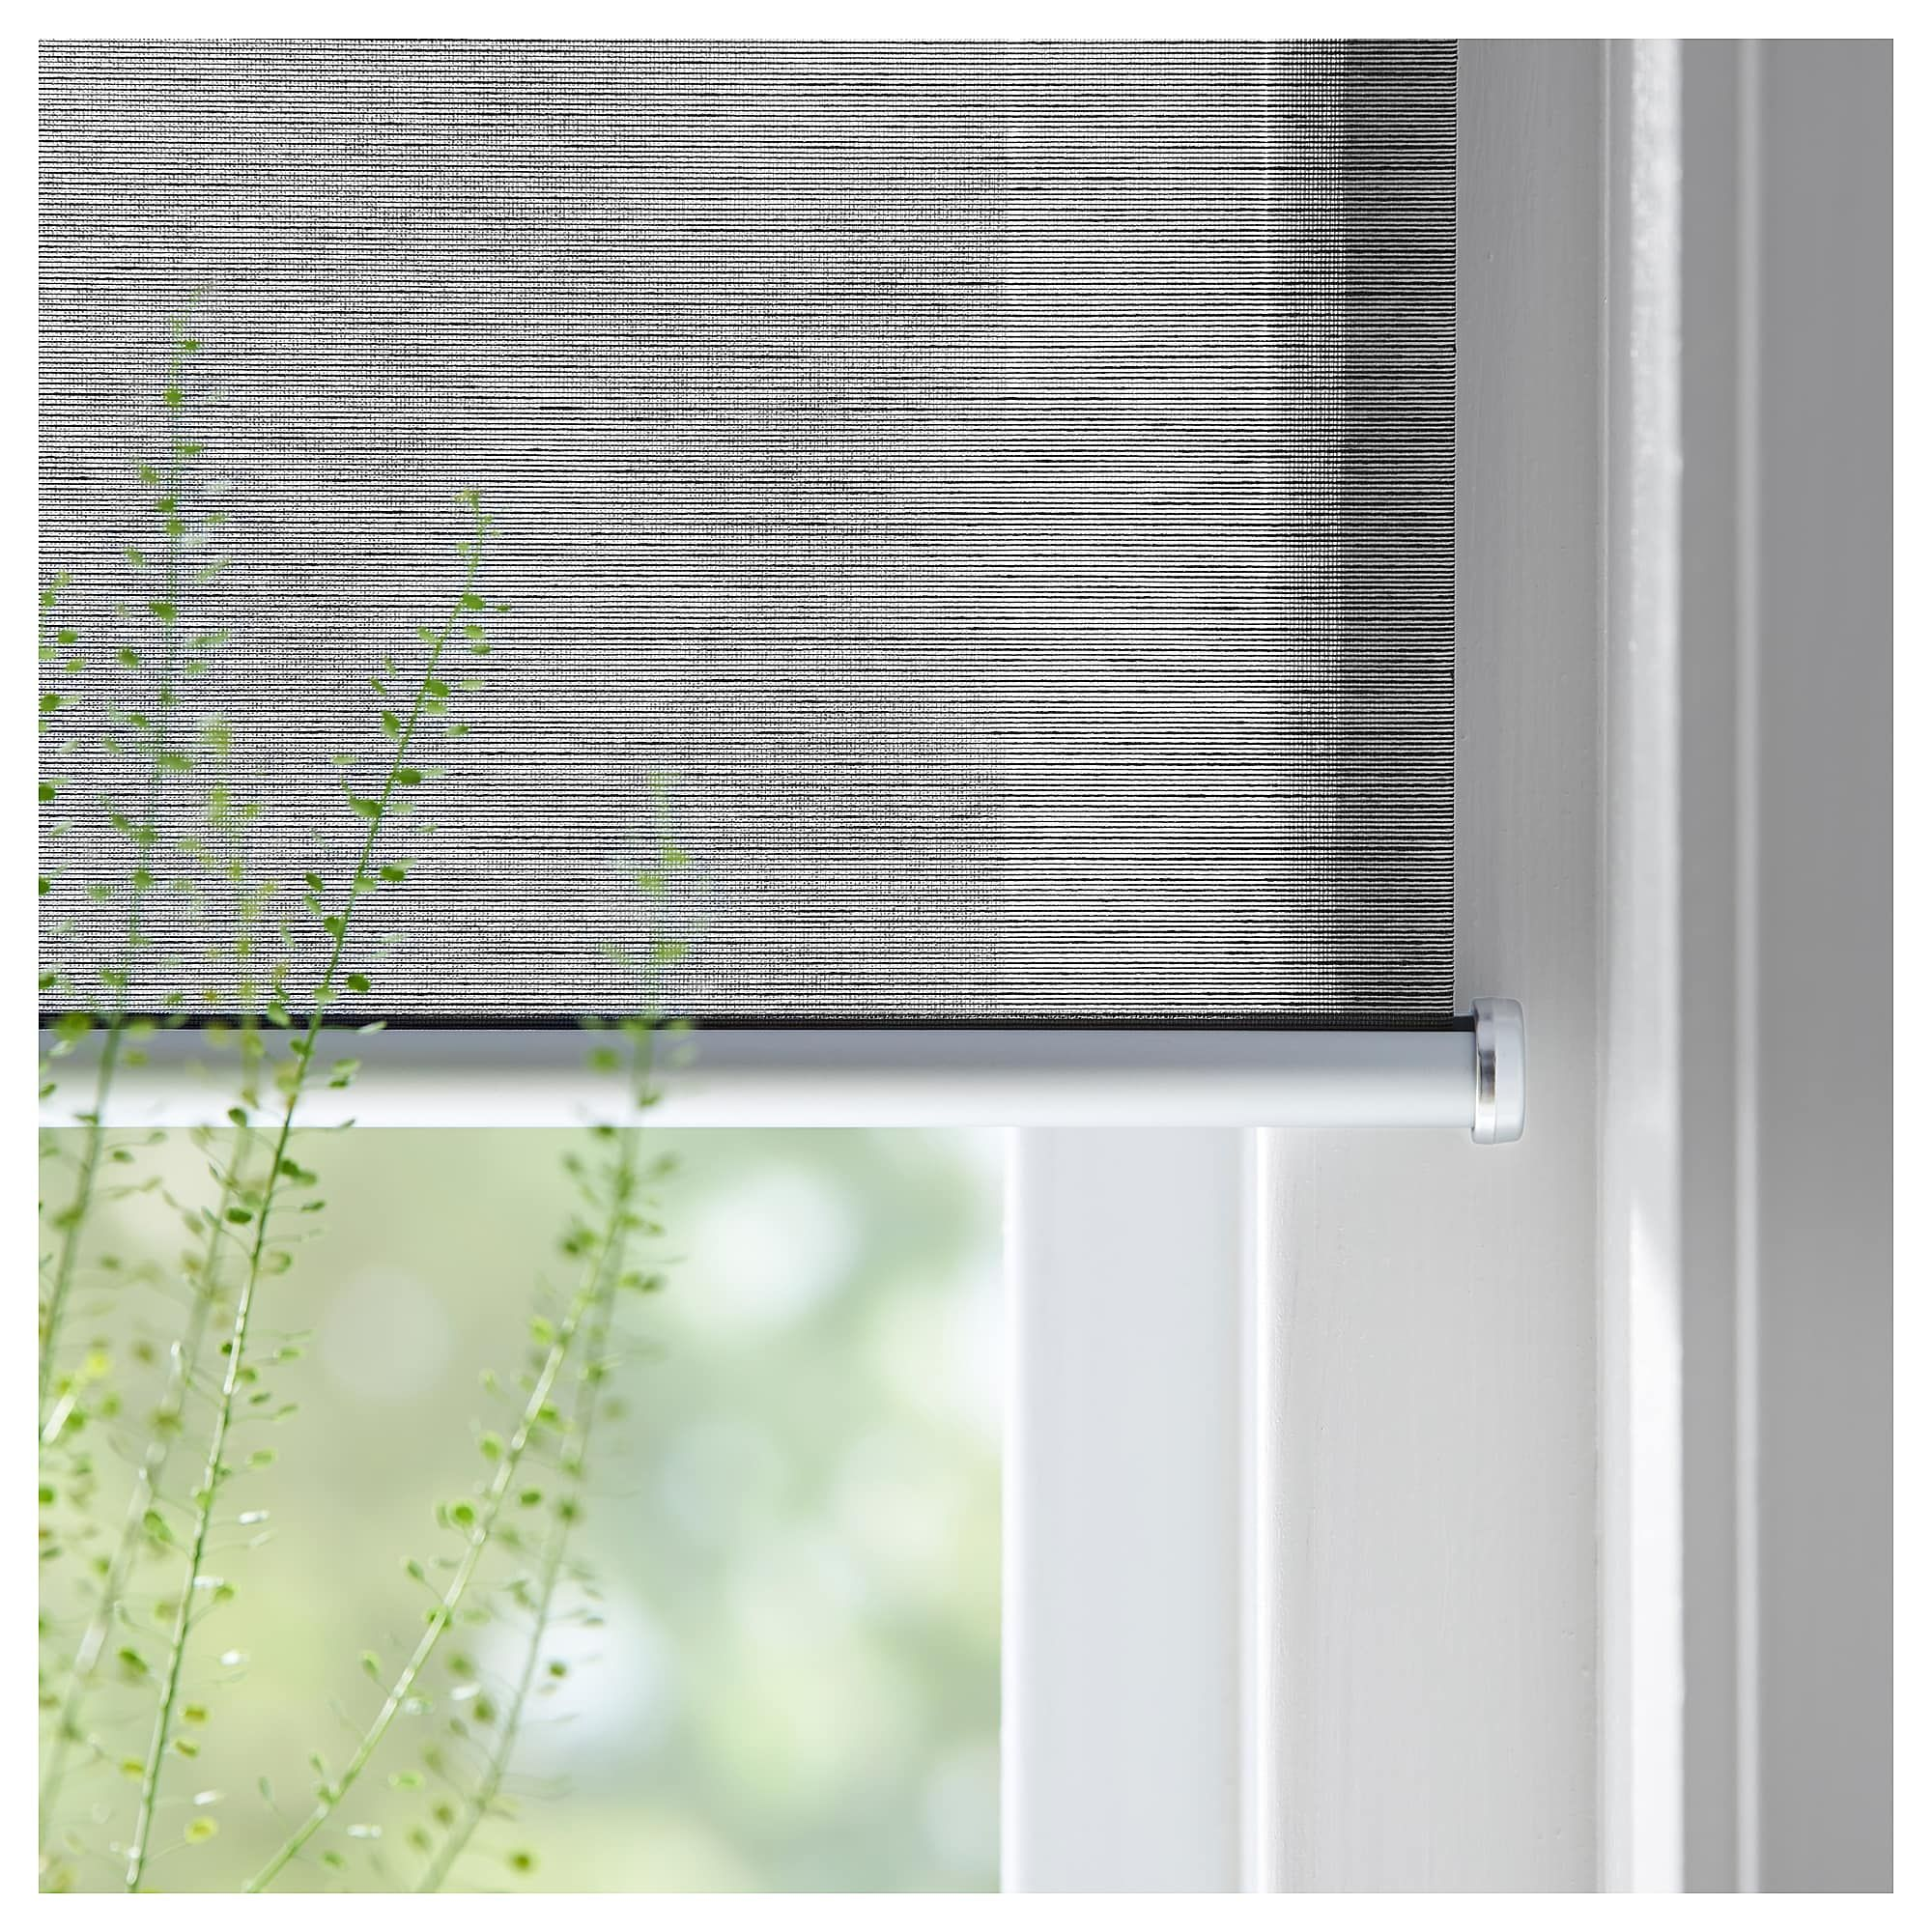 Ikea Skogsklover Gray Roller Blind Blinds Grey